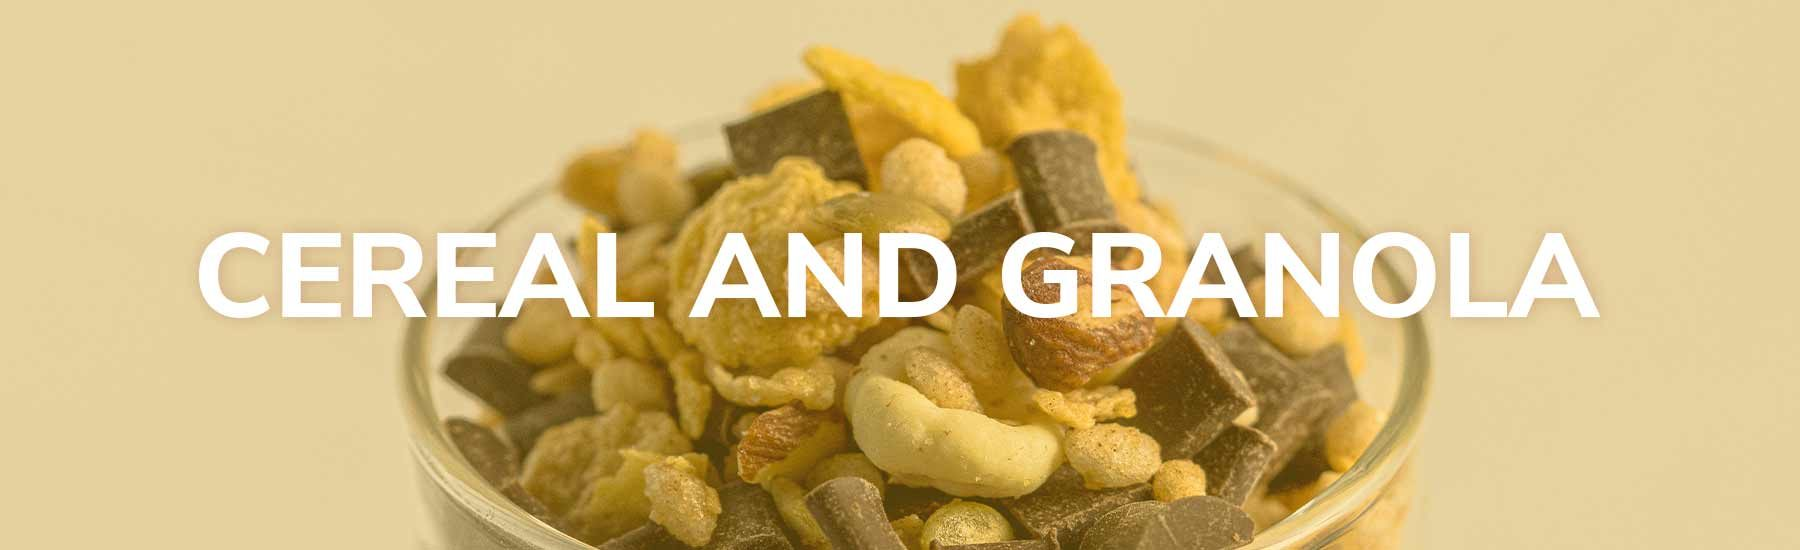 Gan Teck Kar Foods Cereal and Granola Products